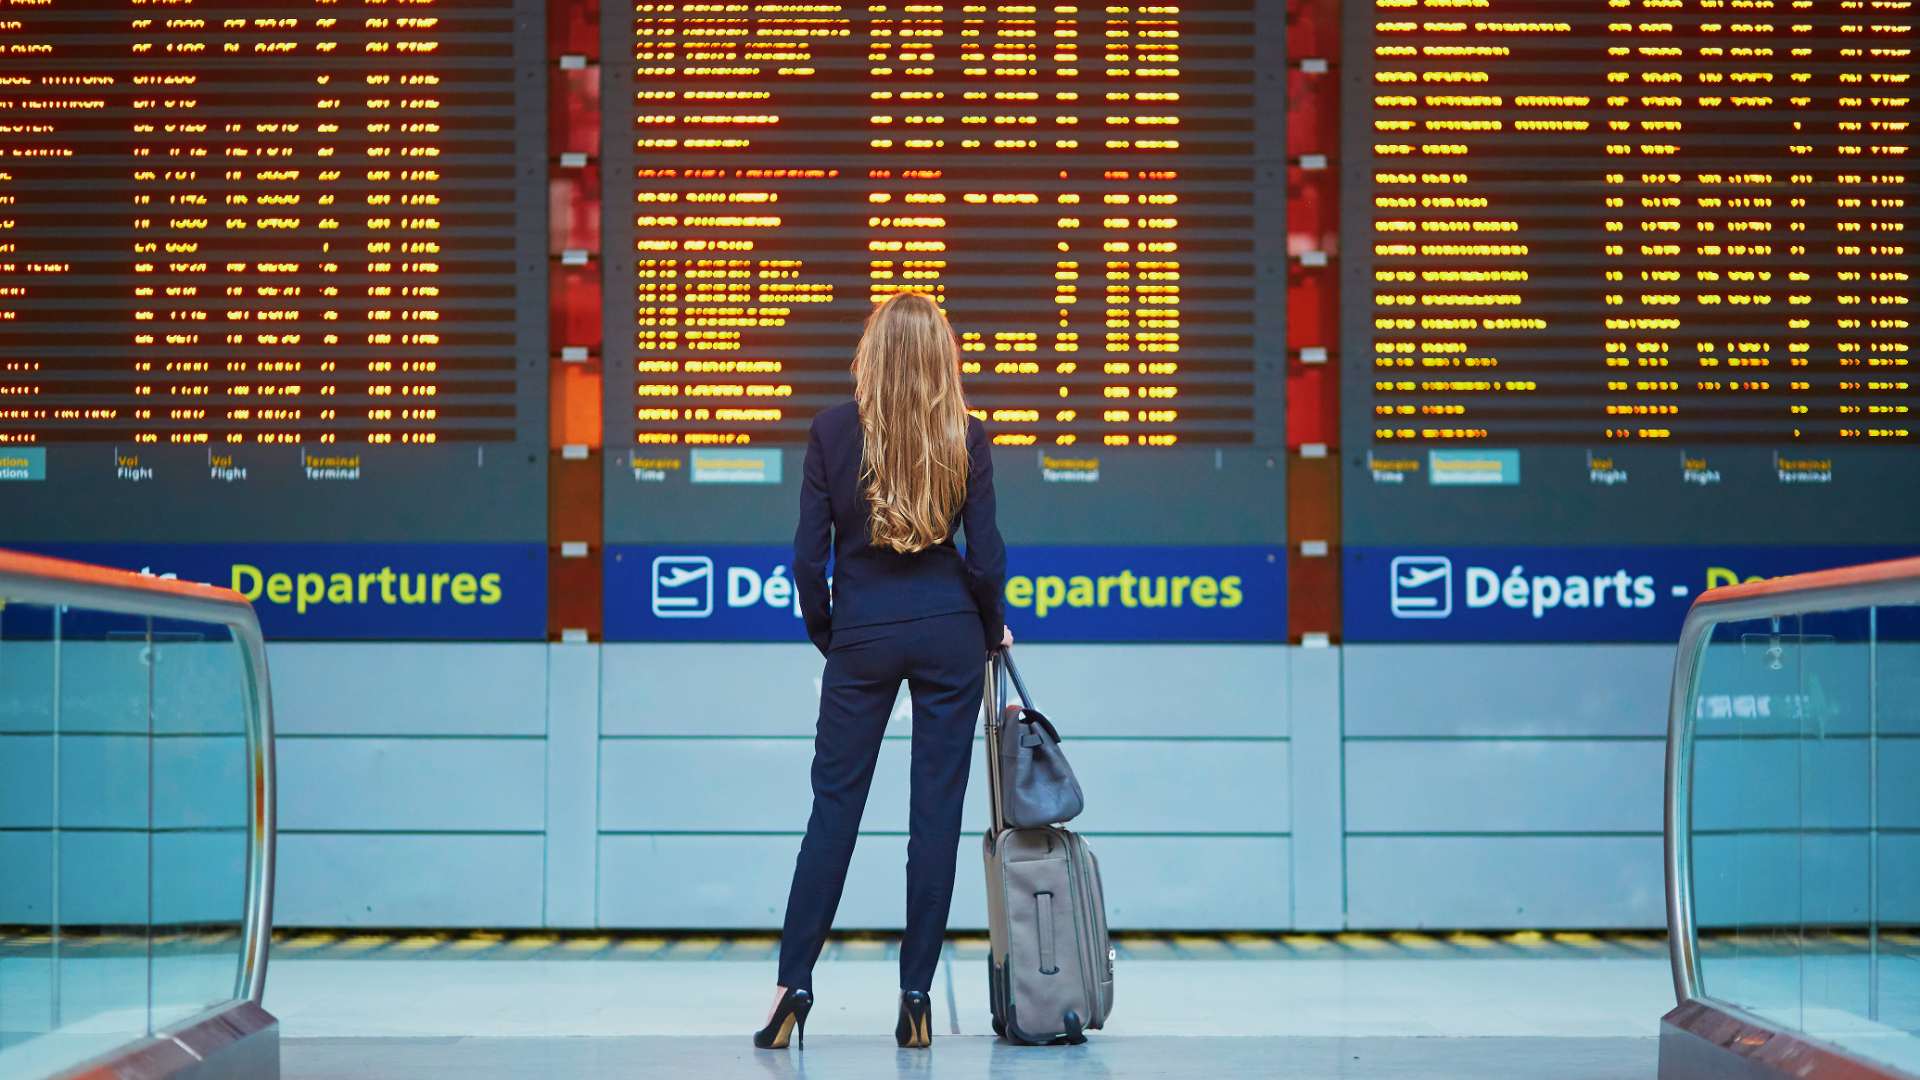 Airport-woman-standing-in-front-of-flight-board